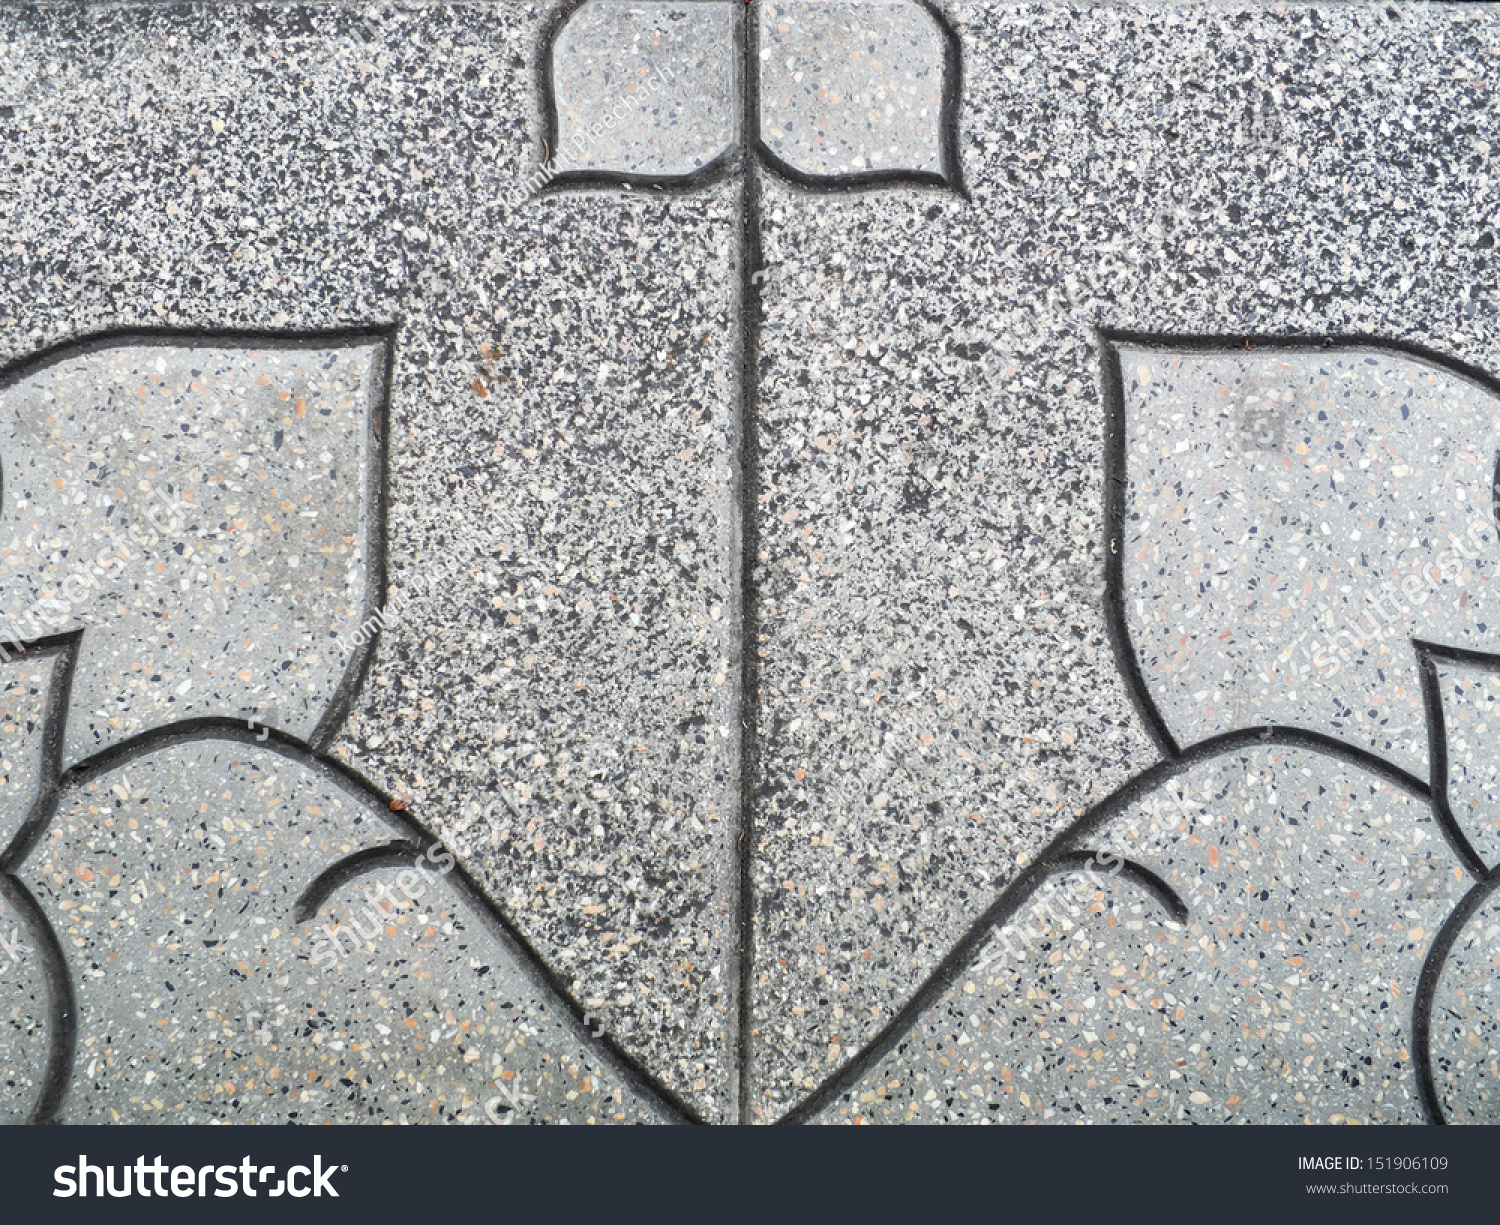 Stone Pavement In Paris : Stone paving texture stock photo shutterstock